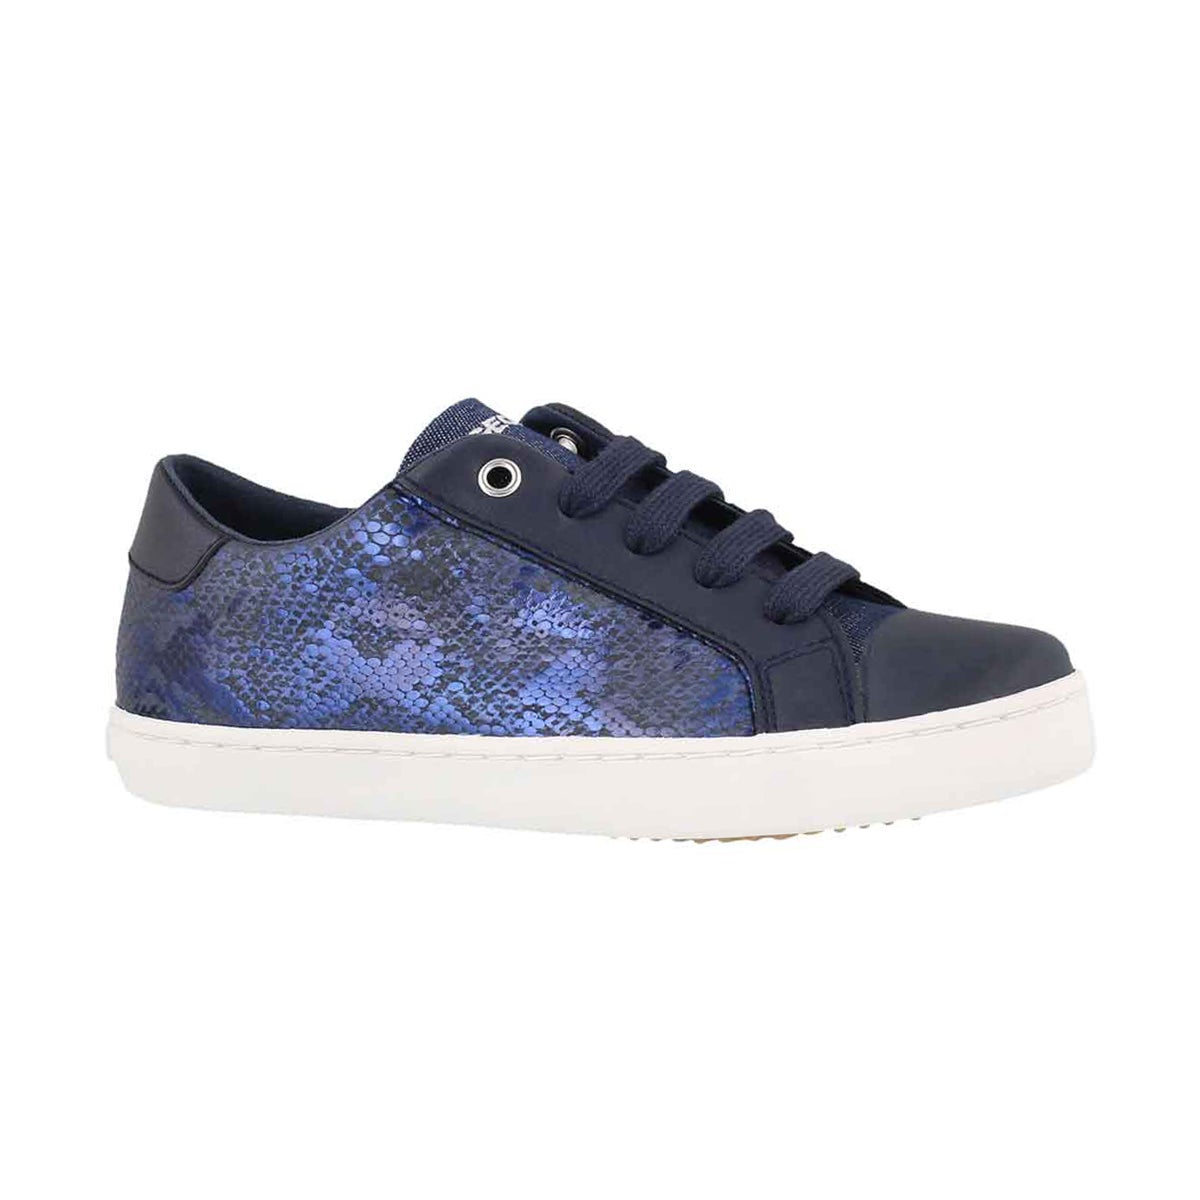 Girls' J GISLI navy sneakers